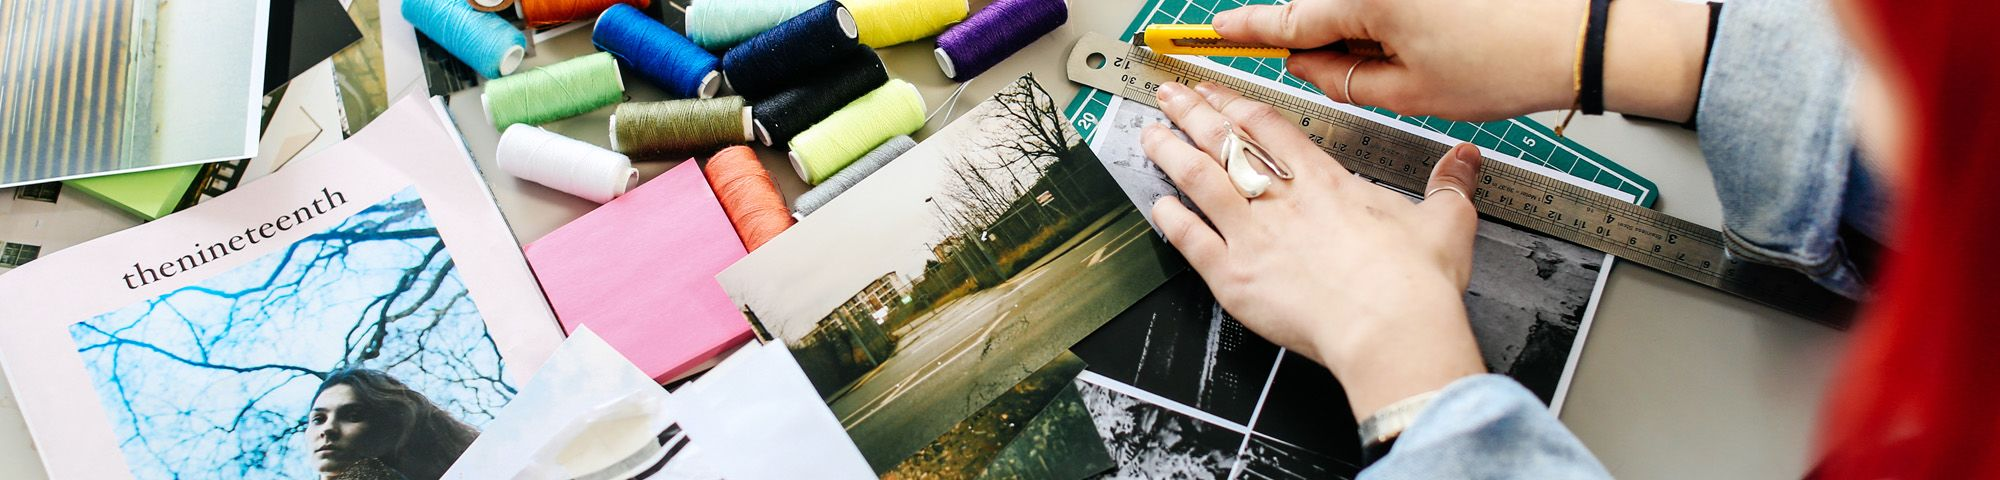 Collage and photography by Danielle Tartaro, International Preparation for Fashion student at London College of Fashion